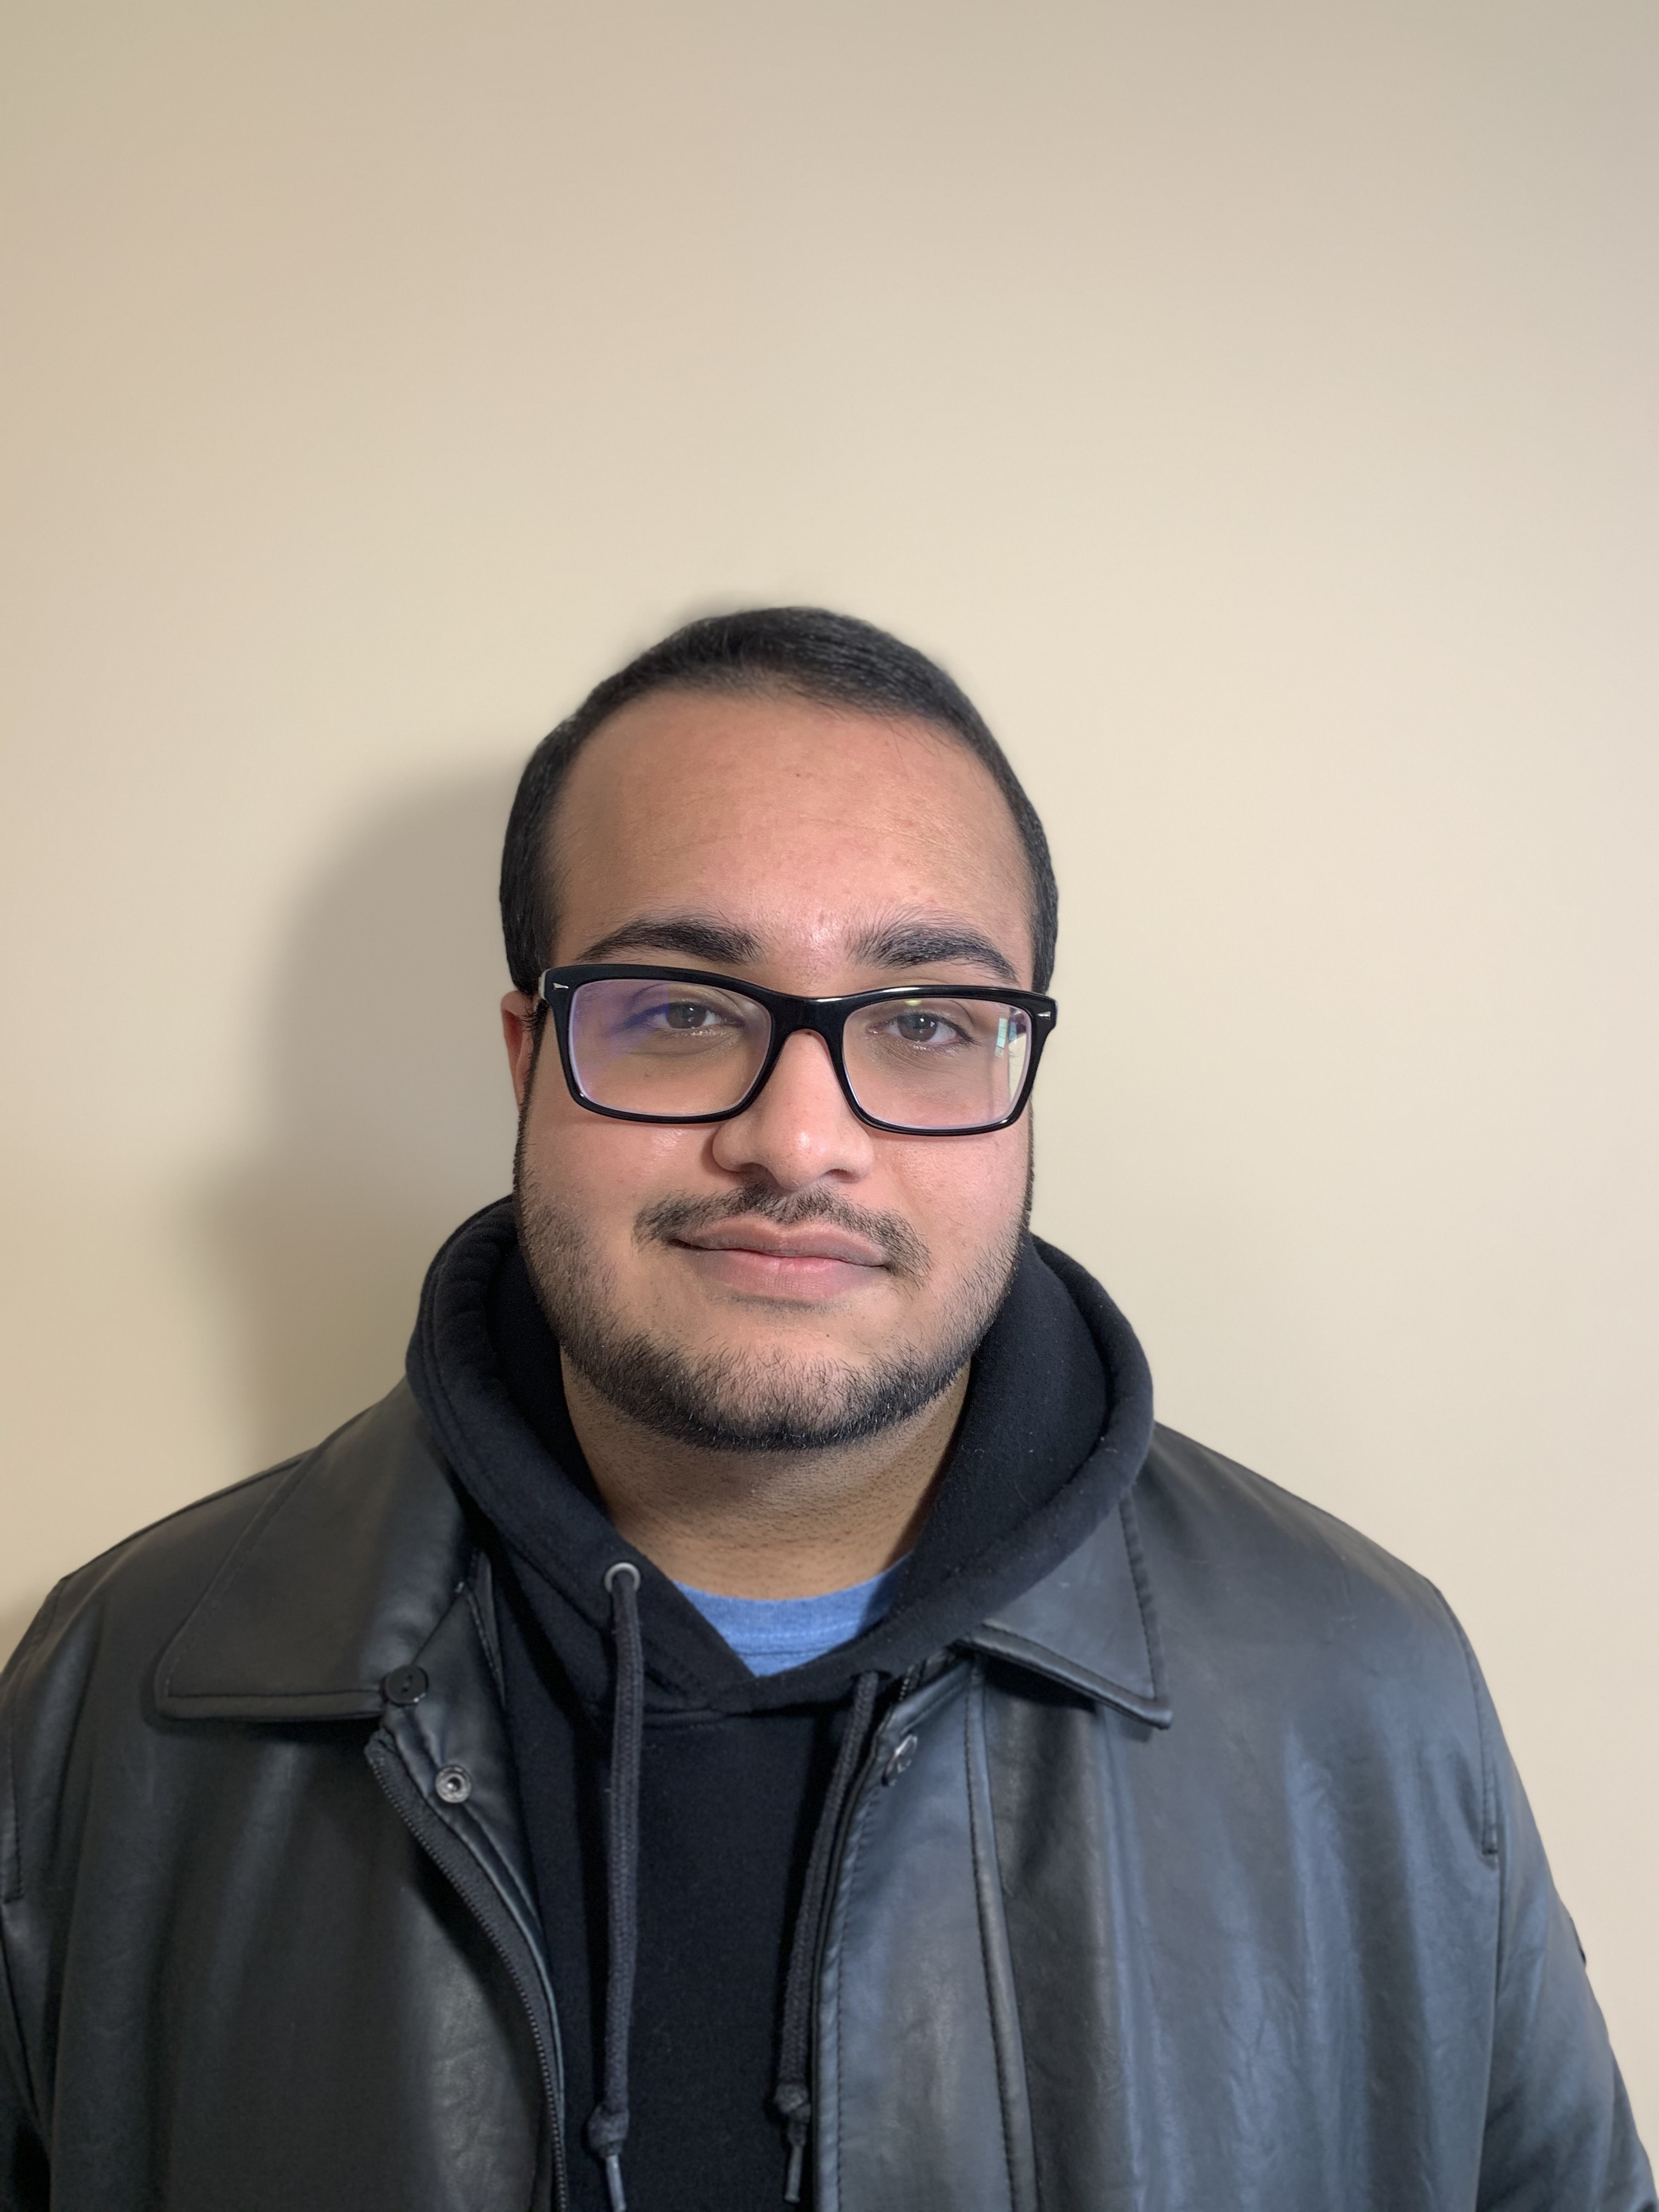 Picture of Hassaan, wearing a black leather jacket